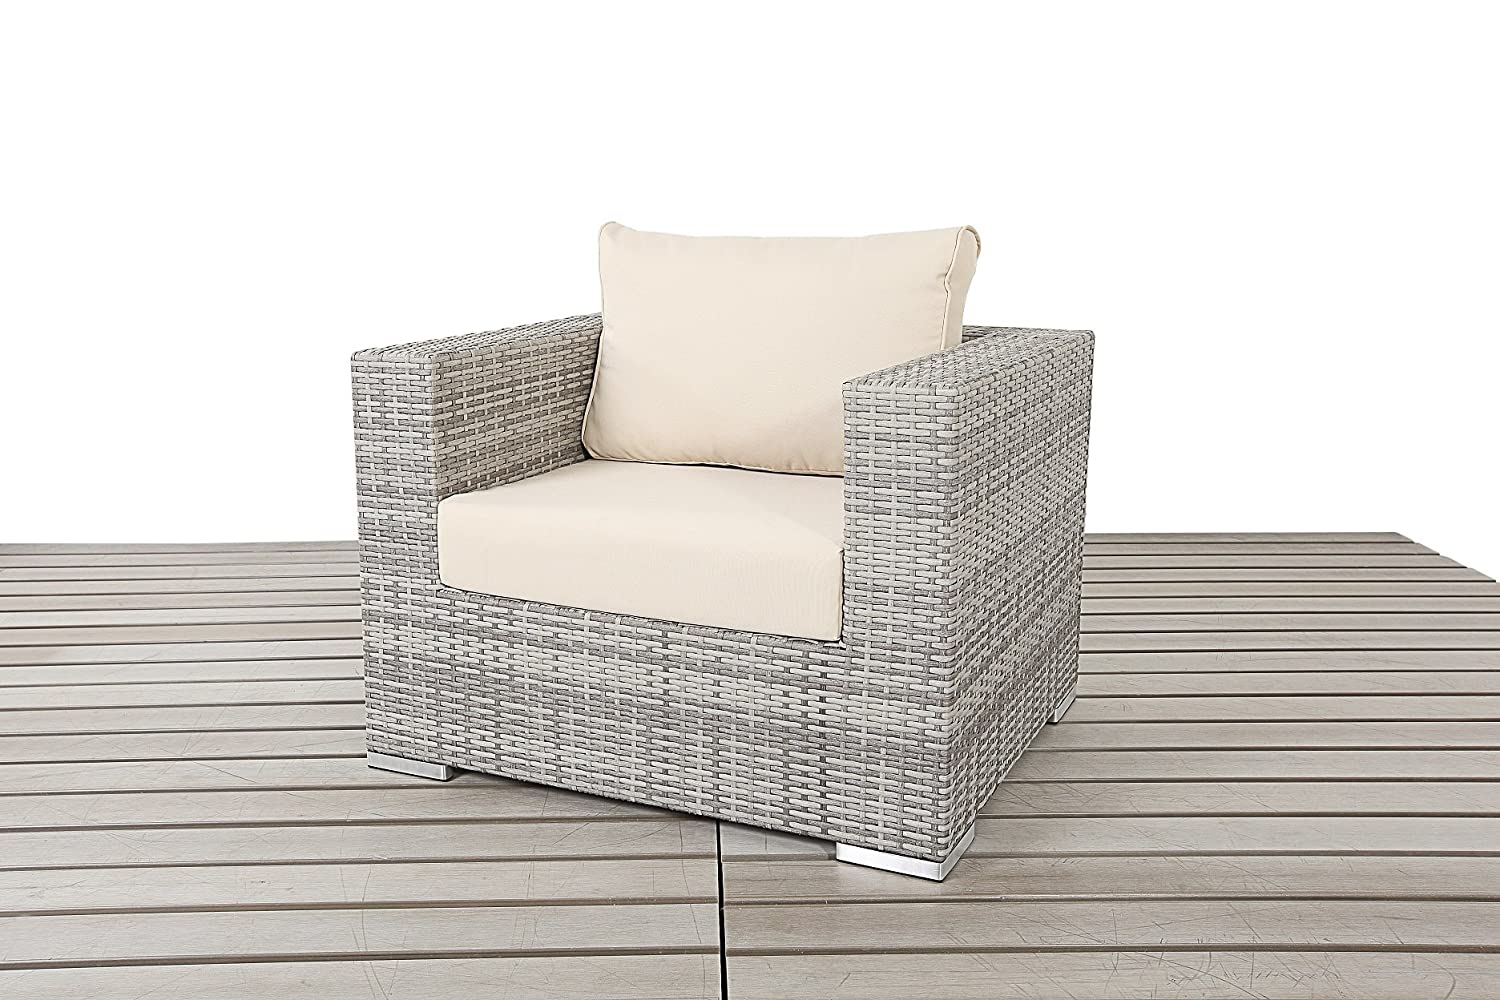 Dallas Rustic Garden Möbel Single Rattan Sessel